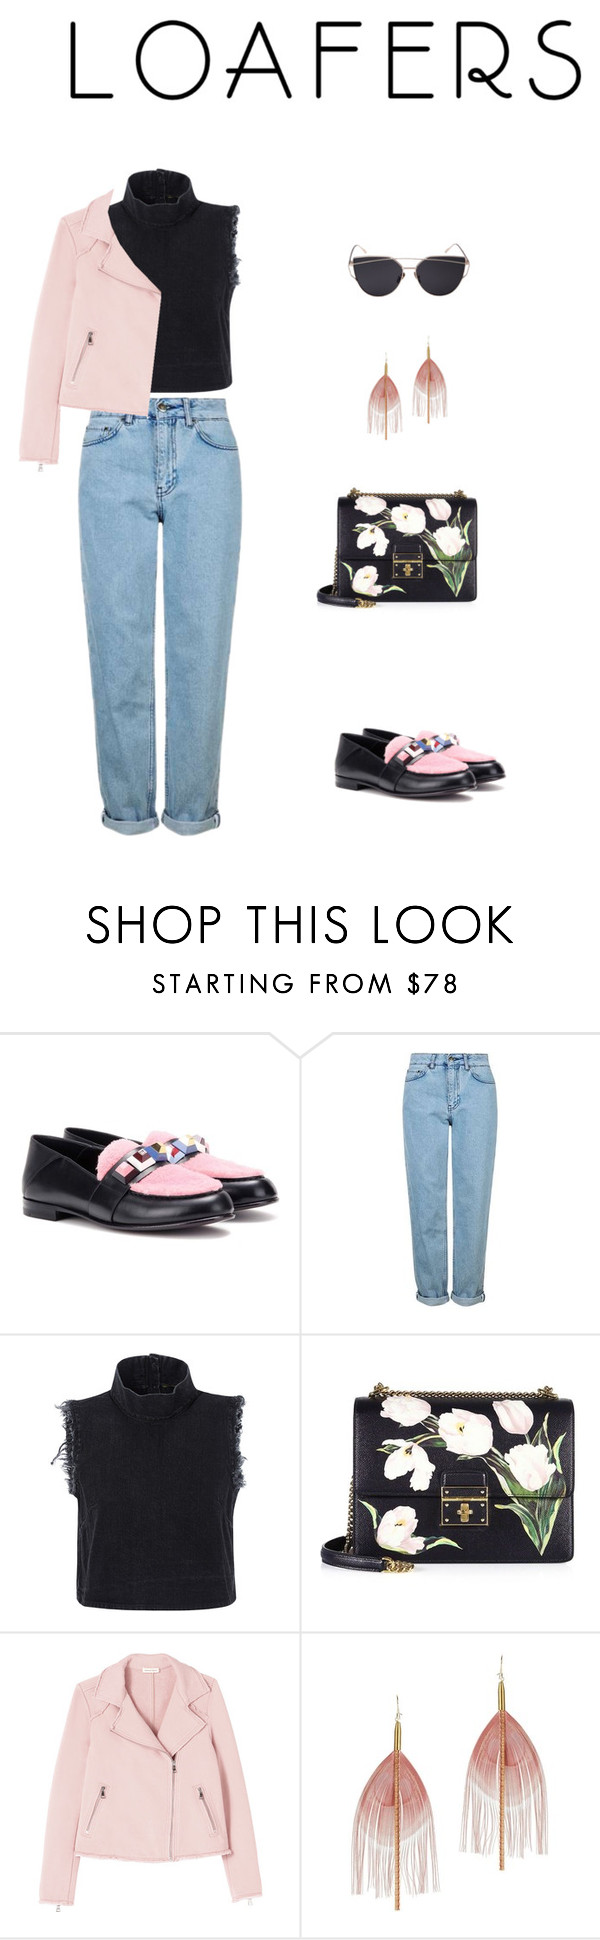 """""""Loafer 1"""" by ovgunalbantoglu ❤ liked on Polyvore featuring Fendi, Topshop, Rachel Comey, Dolce&Gabbana and Serefina"""